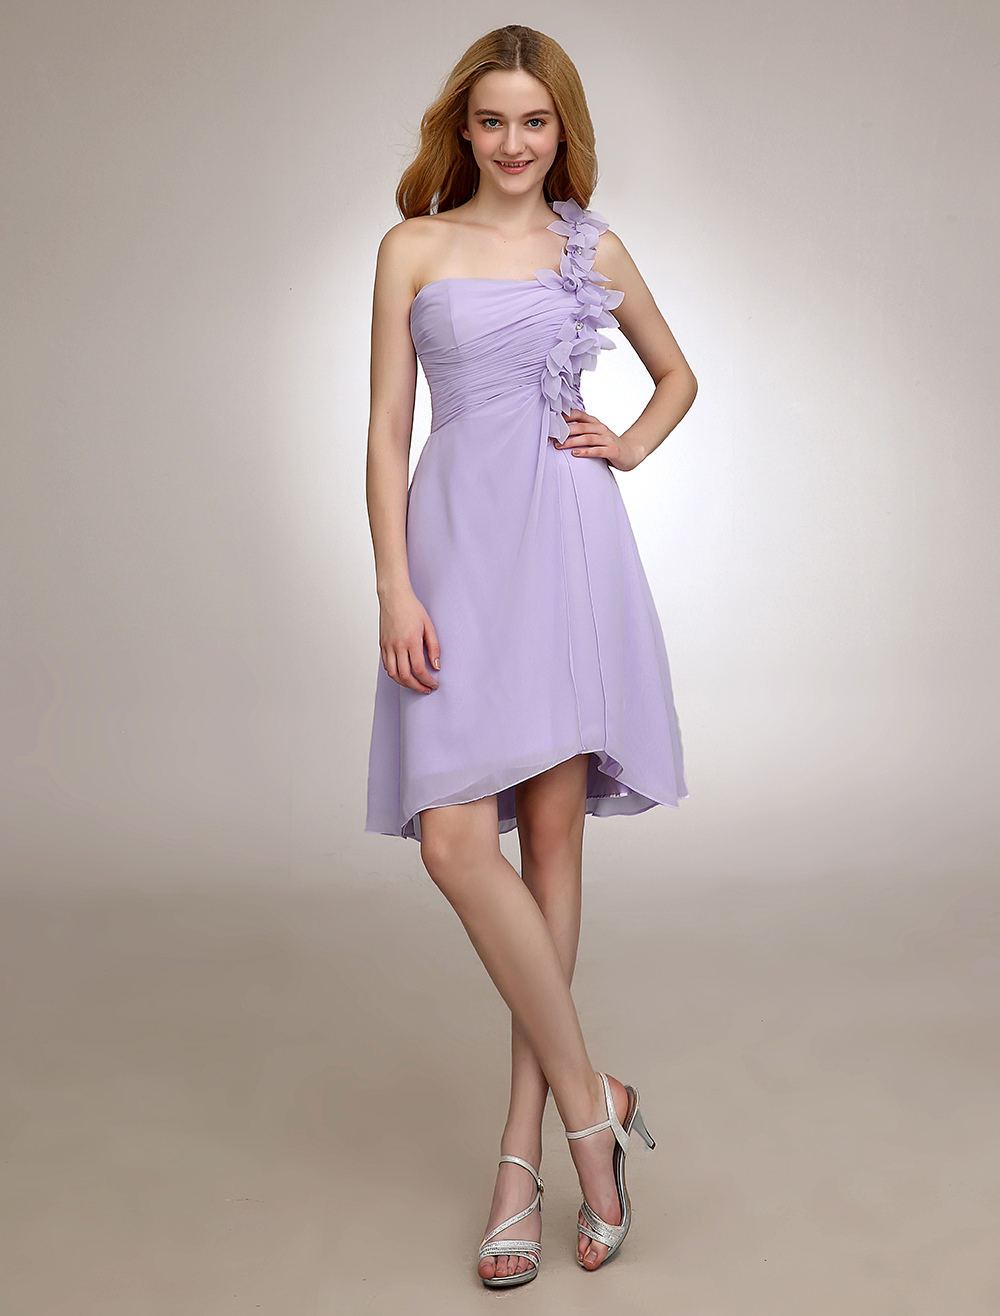 Lilac Short Bridesmaid Dress One Shoulder Pleated Chiffon Flower Backless Homecoming Dress